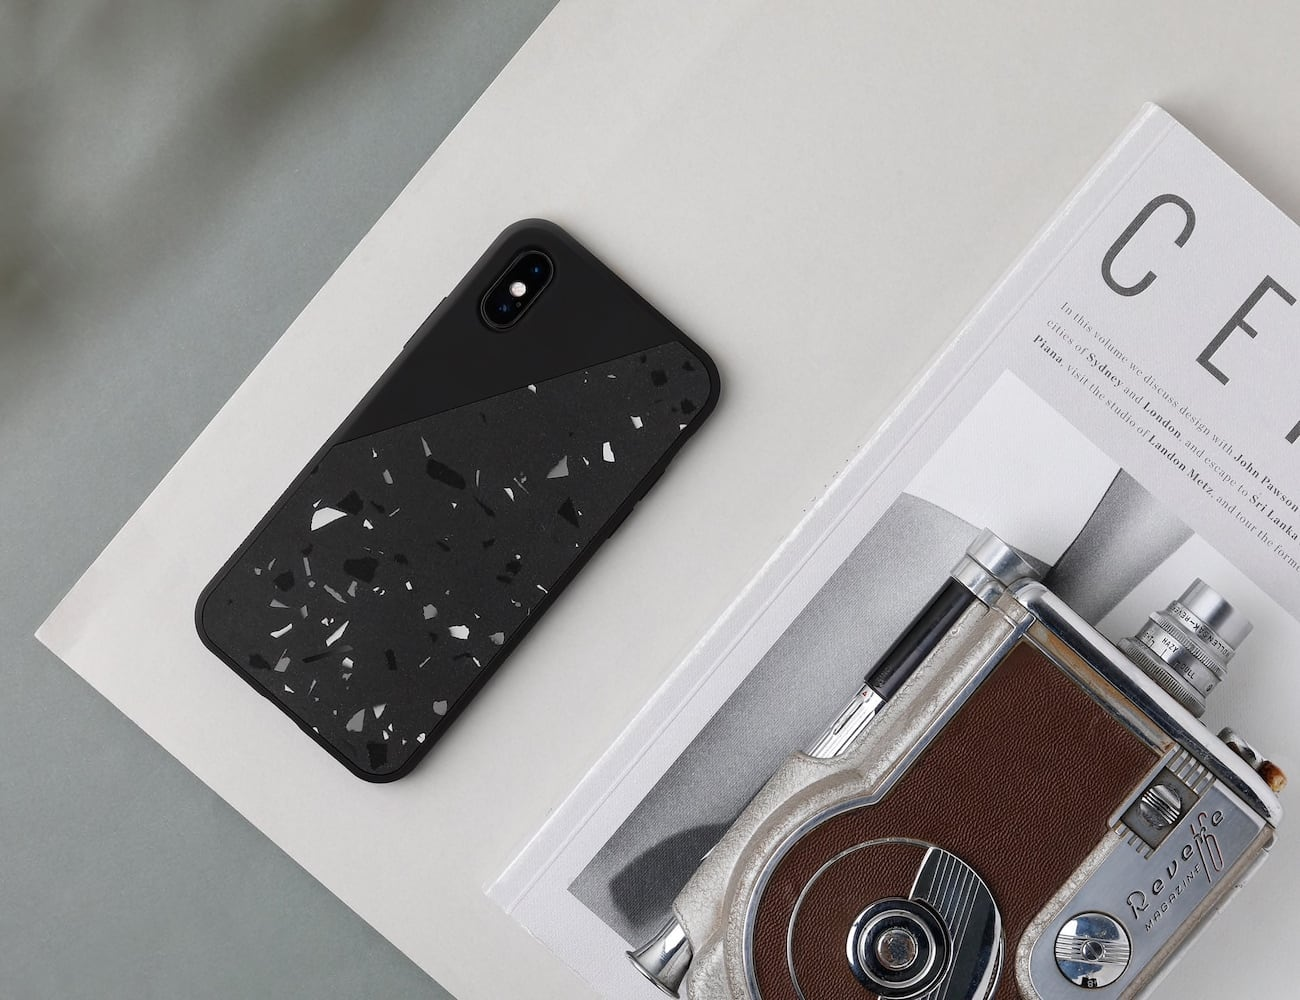 Native Union Clic Terrazzo Hand-Crafted iPhone Case protects your device